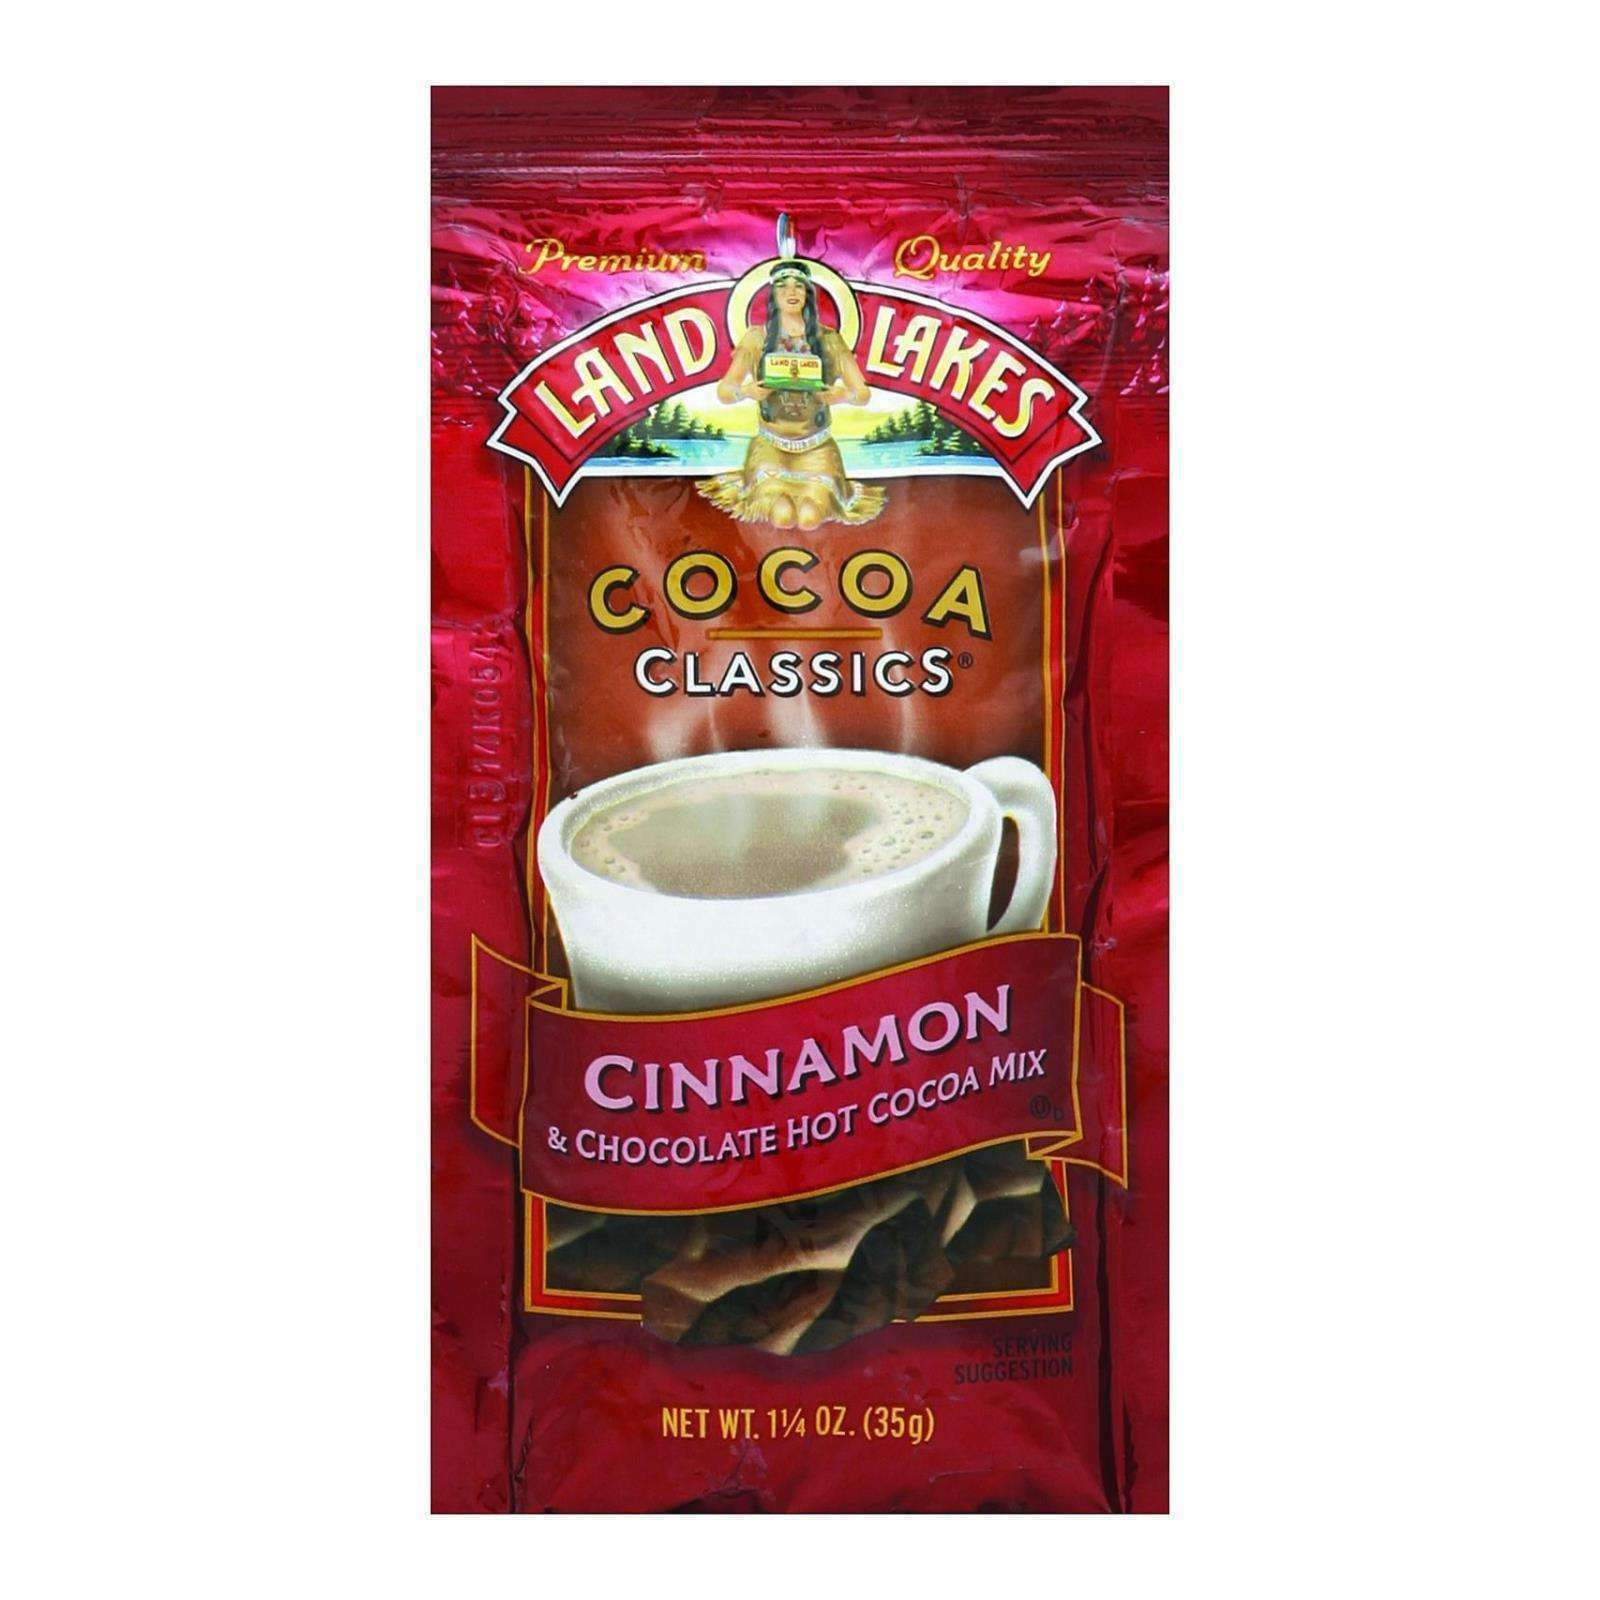 Land O Lakes Cocoa Classic Mix - Cinnamon And Chocolate - 1.25 Oz - Case Of 12 - BeeGreen